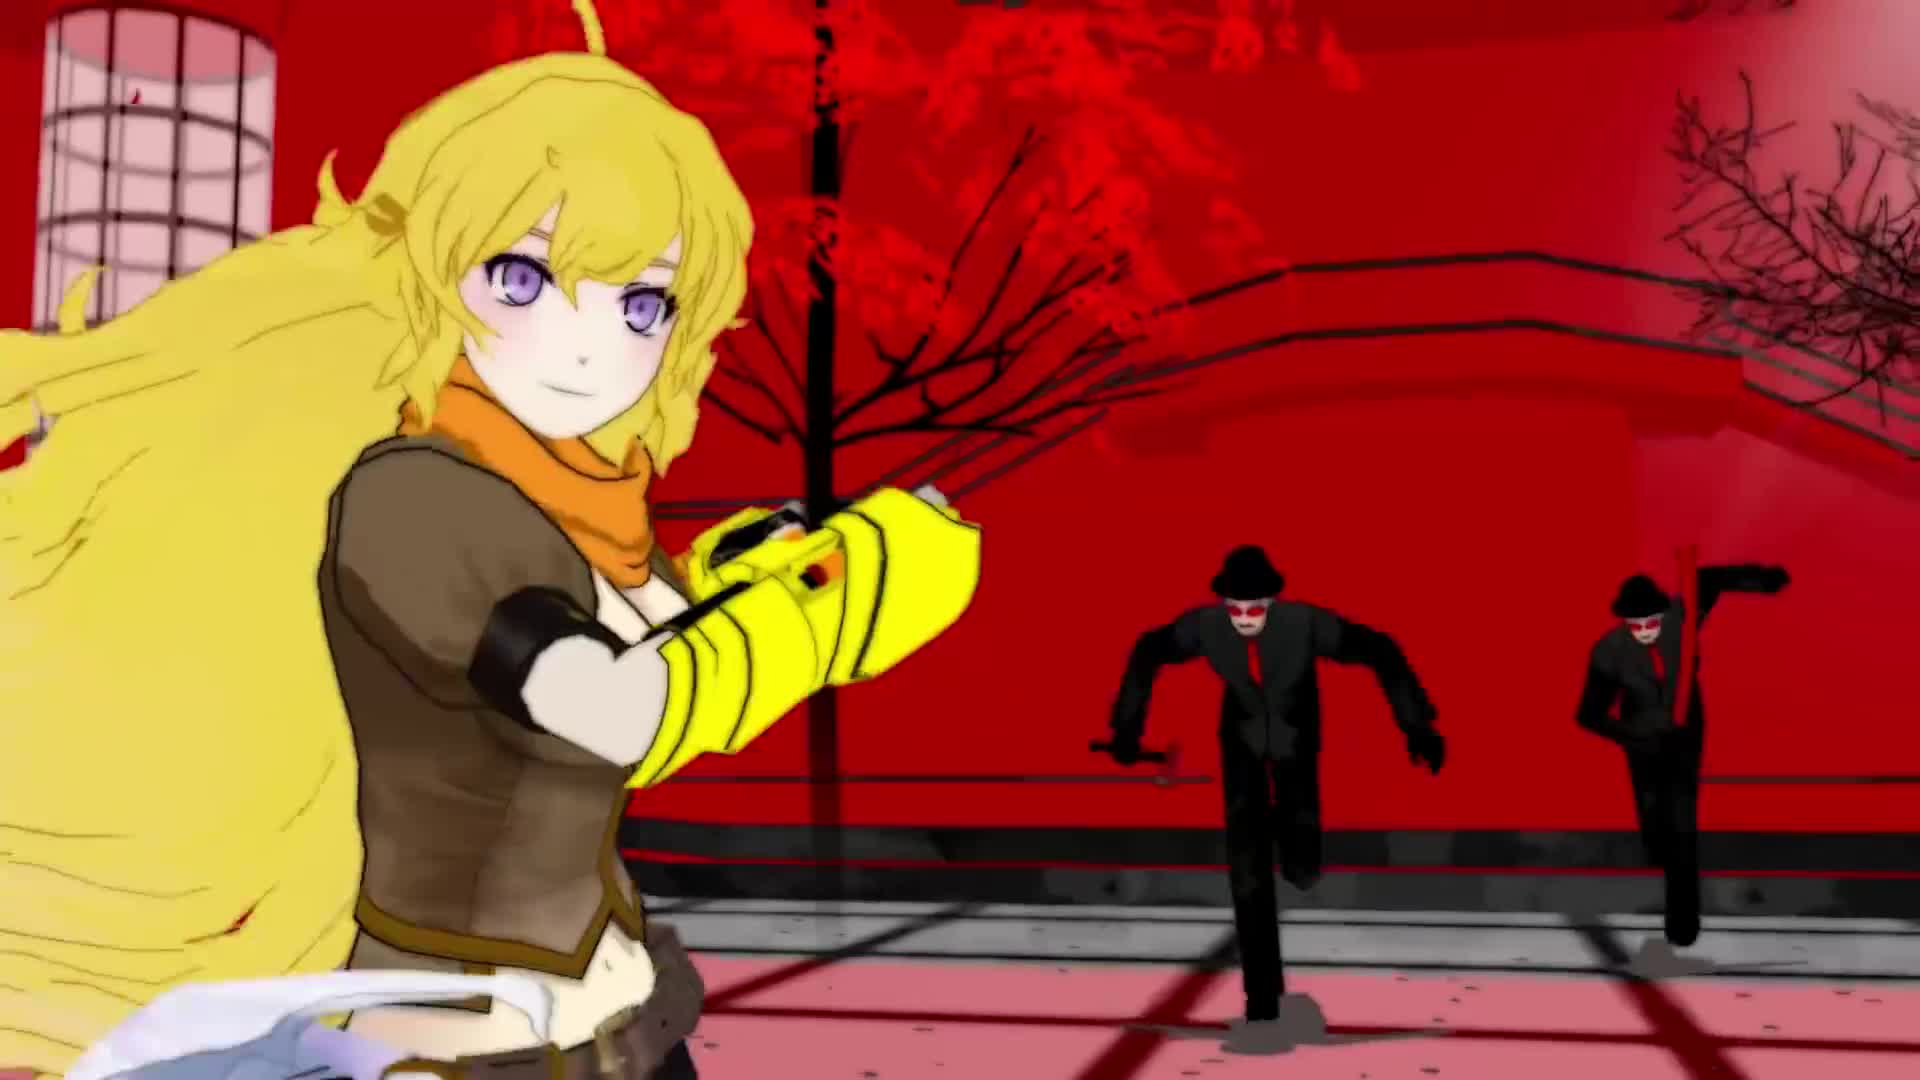 Rwby Yellow Trailer Gifs Search | Search & Share on Homdor